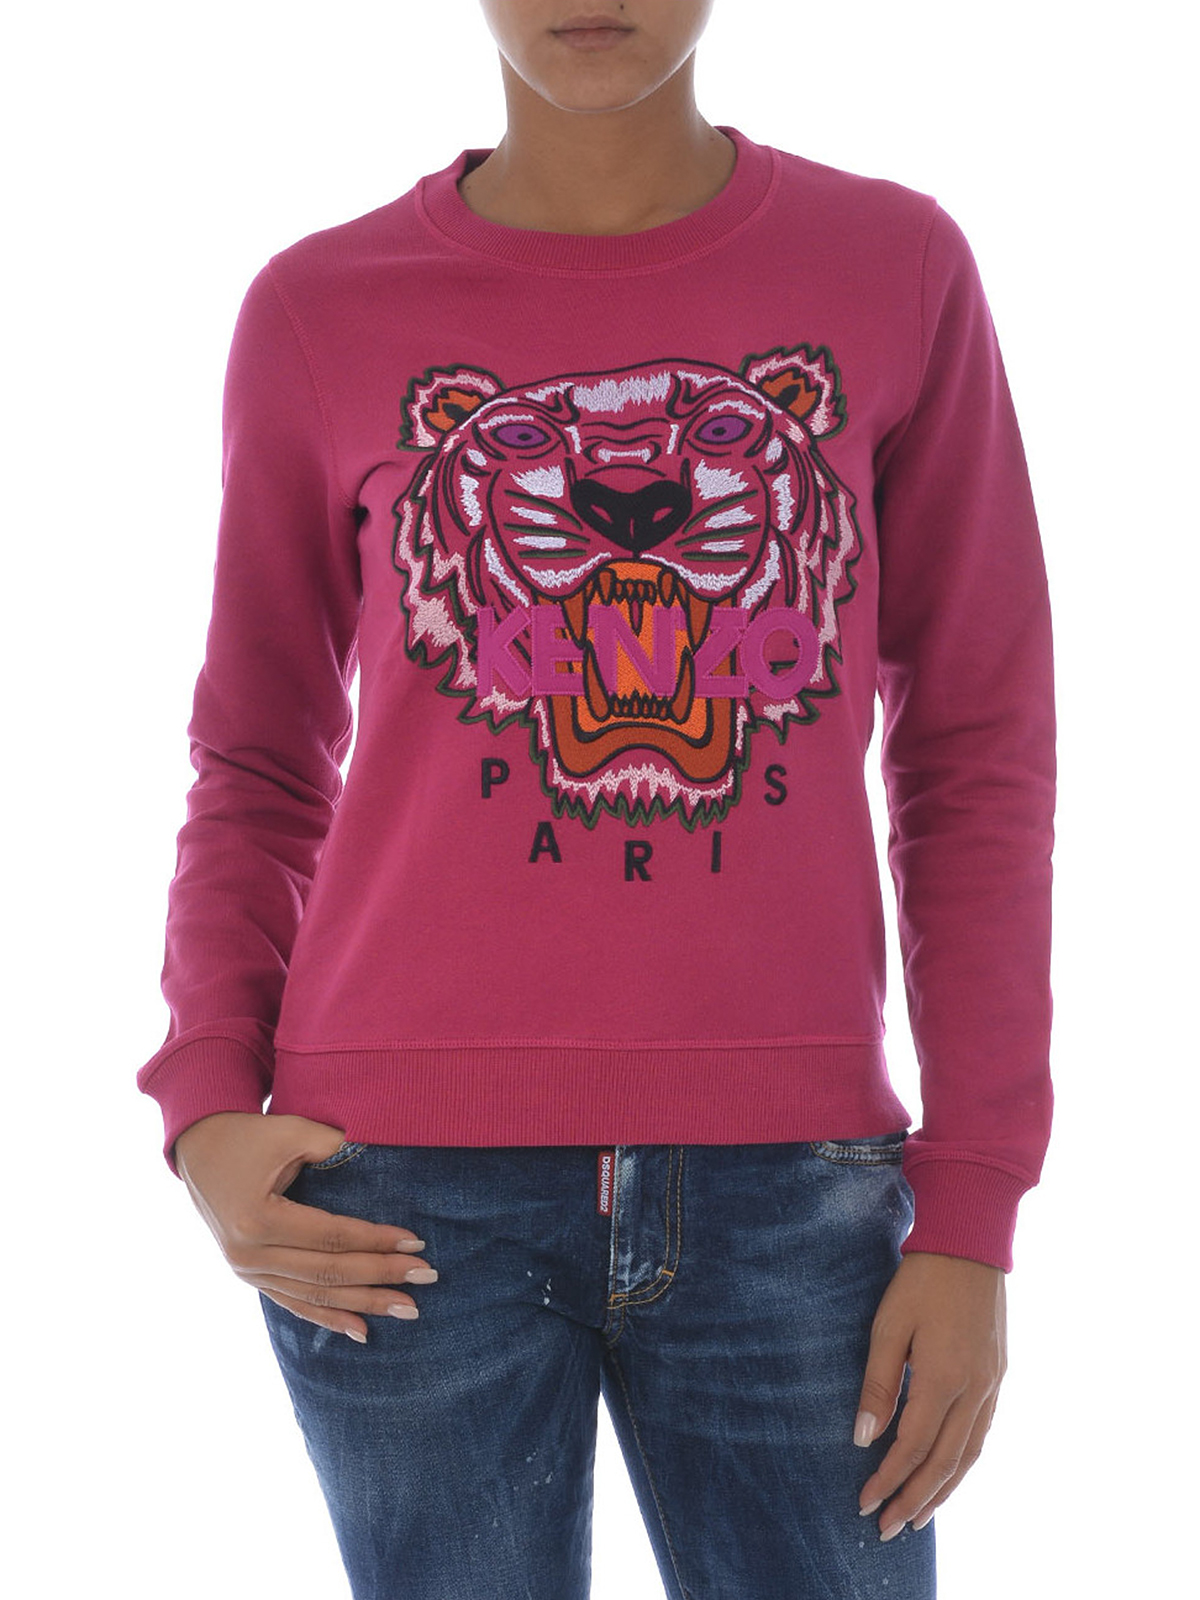 c133374452 KENZO: Sweatshirts & Sweaters online - Tiger embroidery cotton sweatshirt